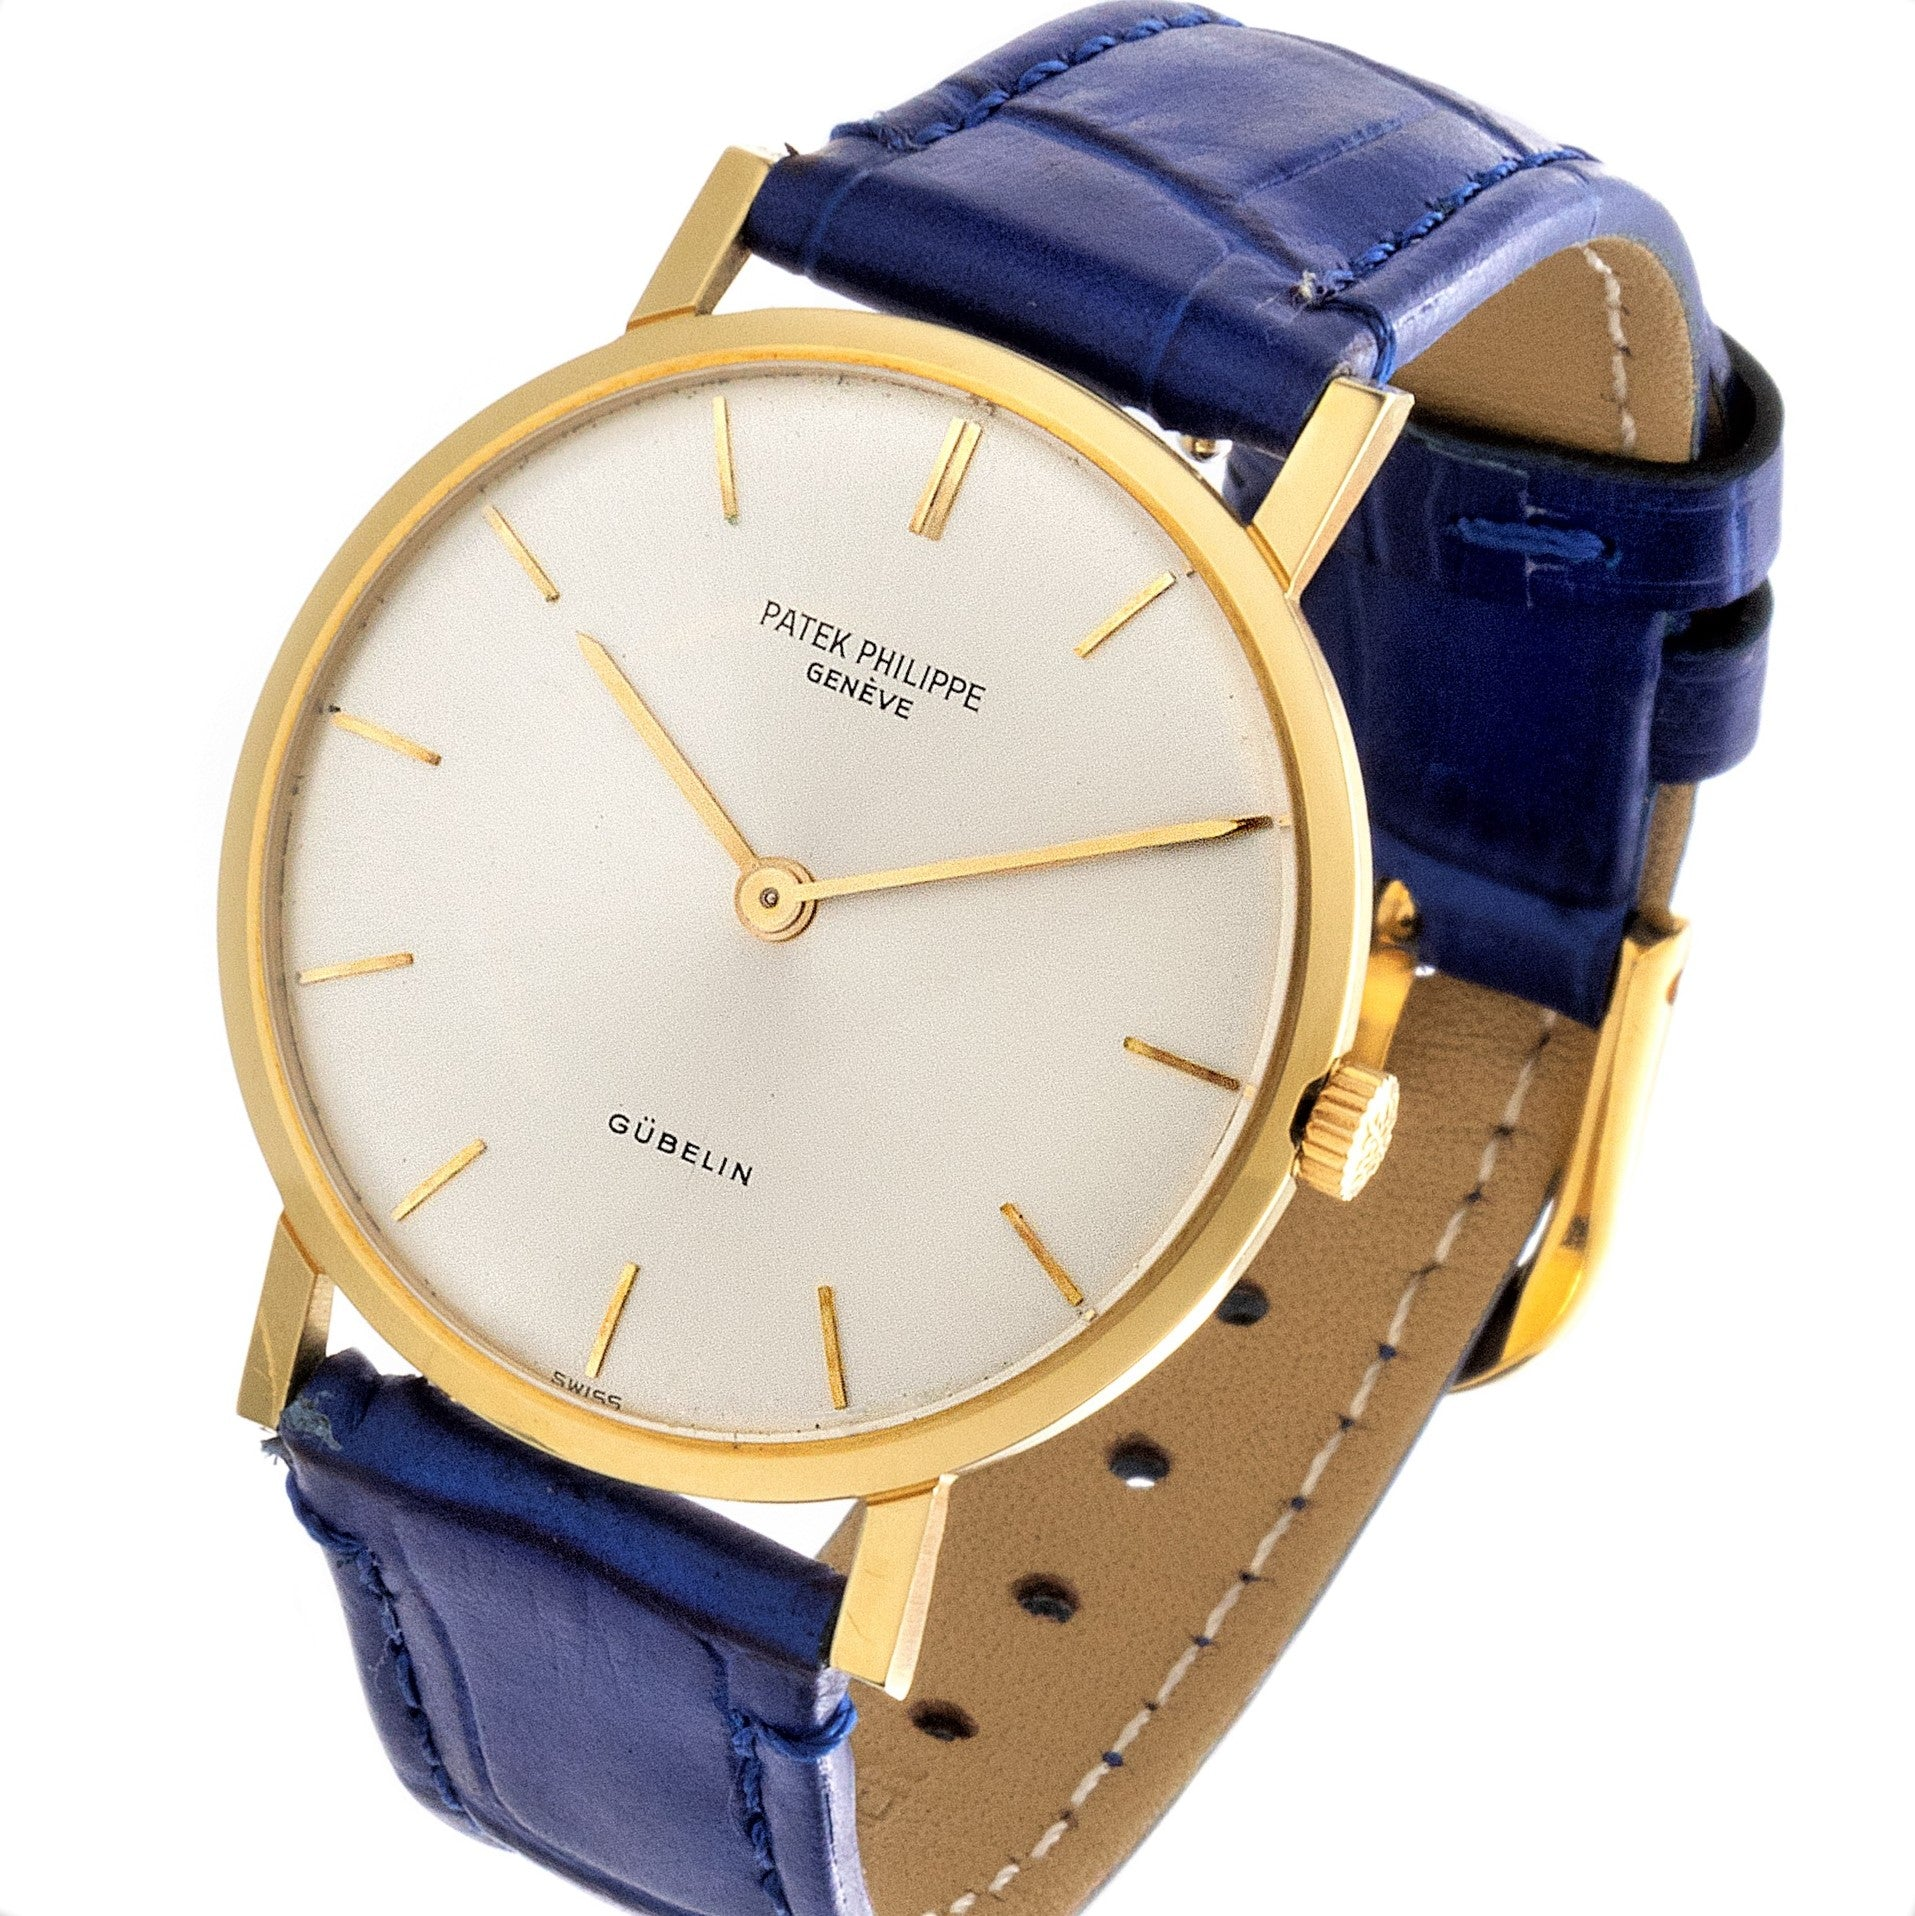 Patek Philippe 3512J Calatrava Extra Thin Watch